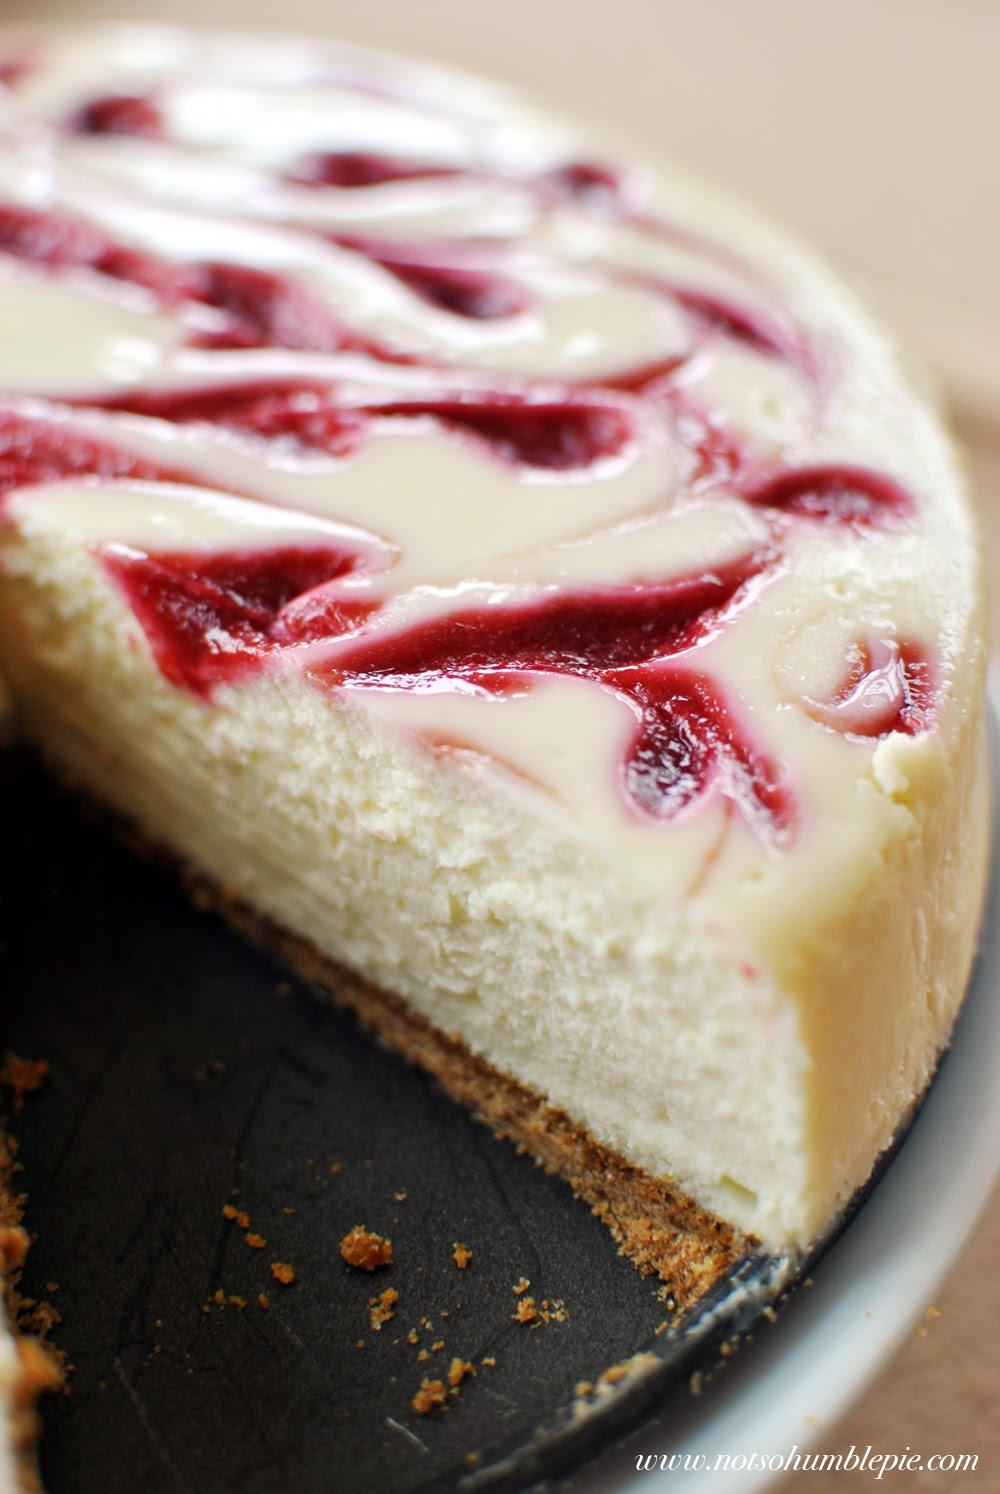 Not So Humble Pie: Raspberry Swirl Cheesecake